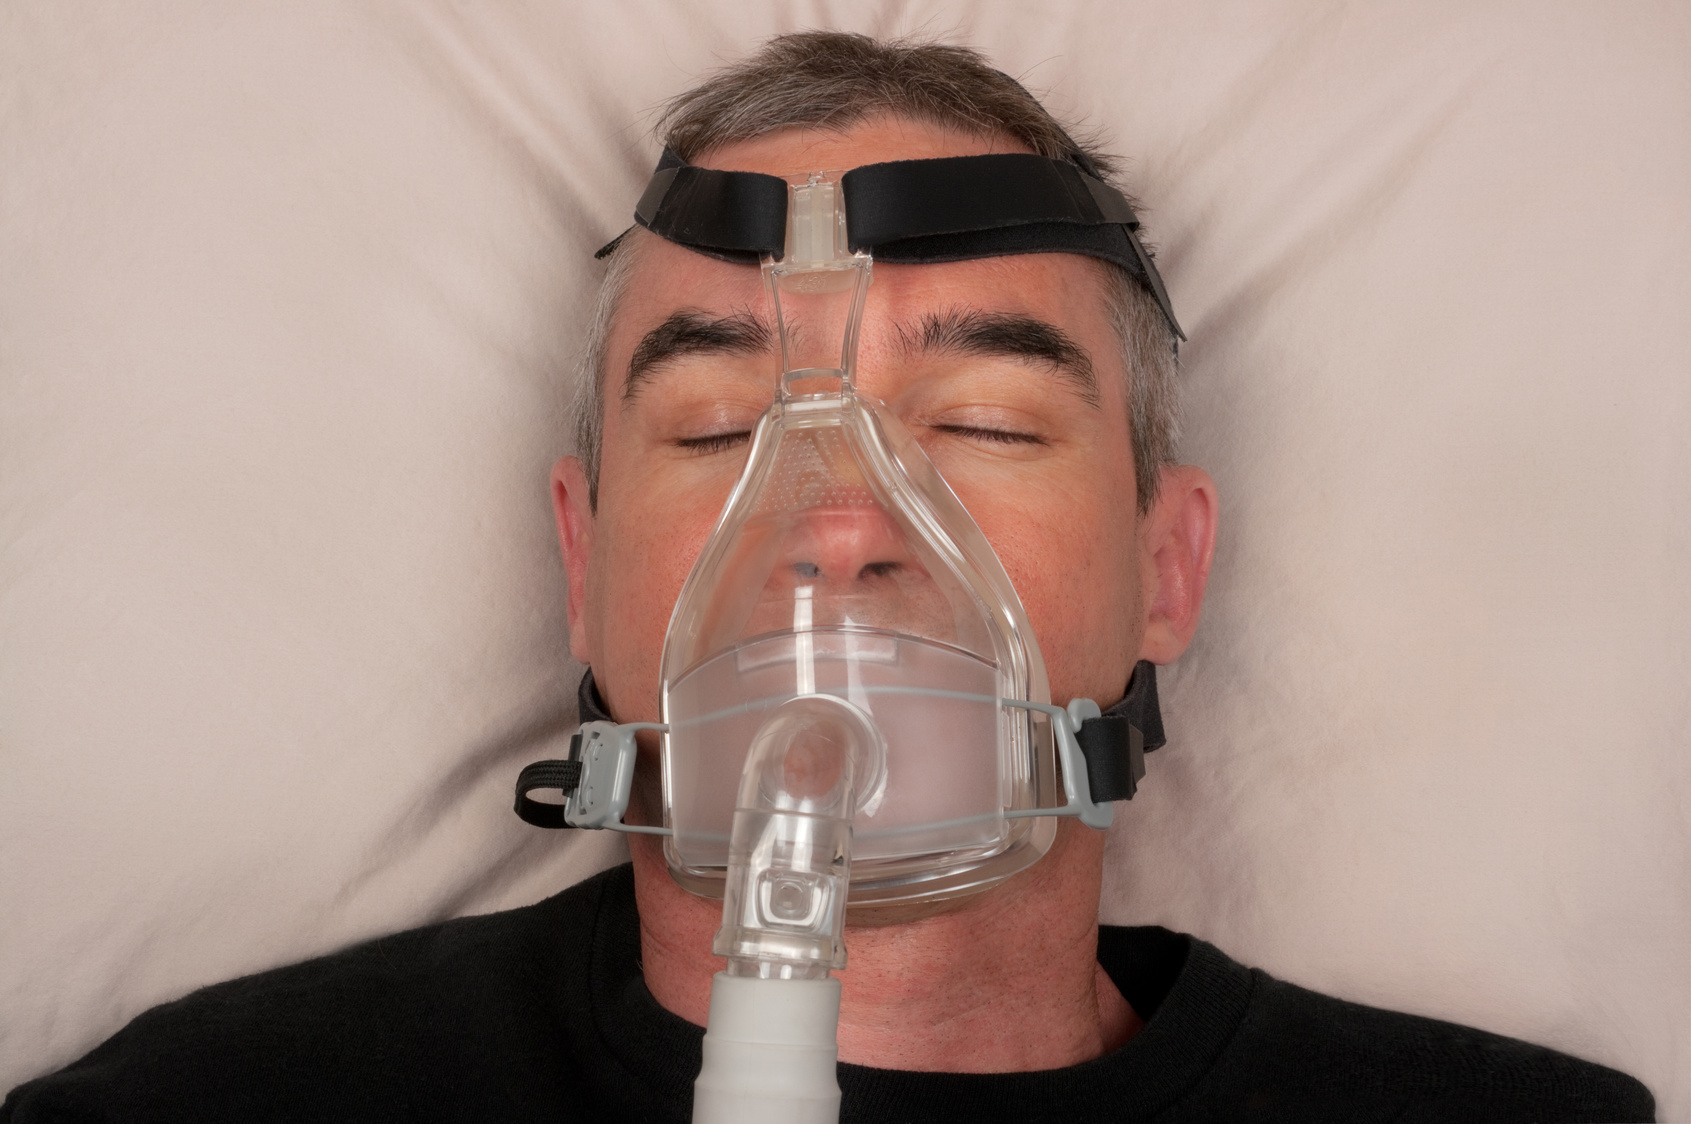 CPAP is a great treatment option for sleep apnea